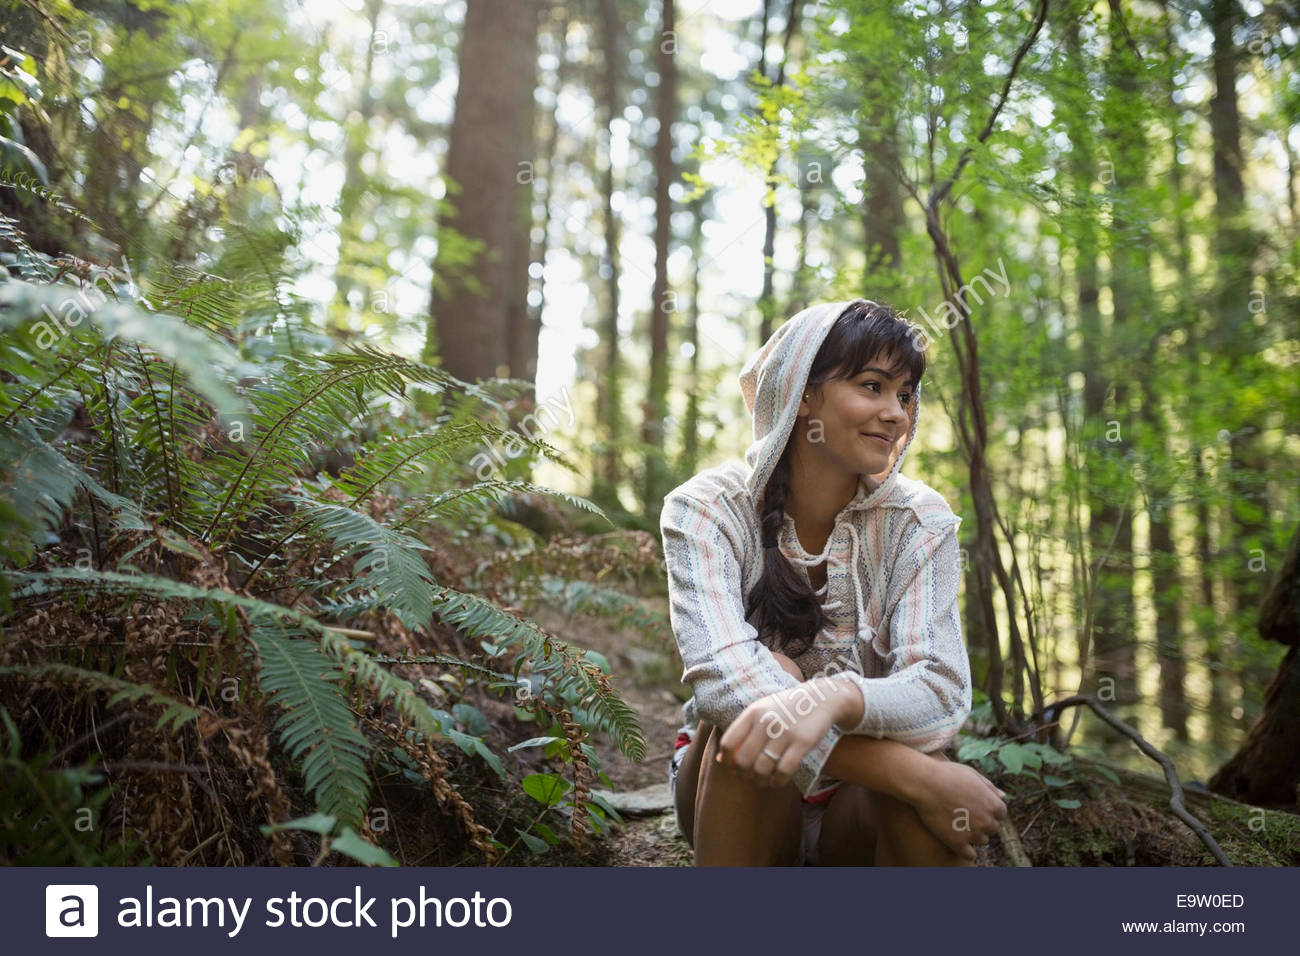 Young woman wearing hoody in woods - Stock Image